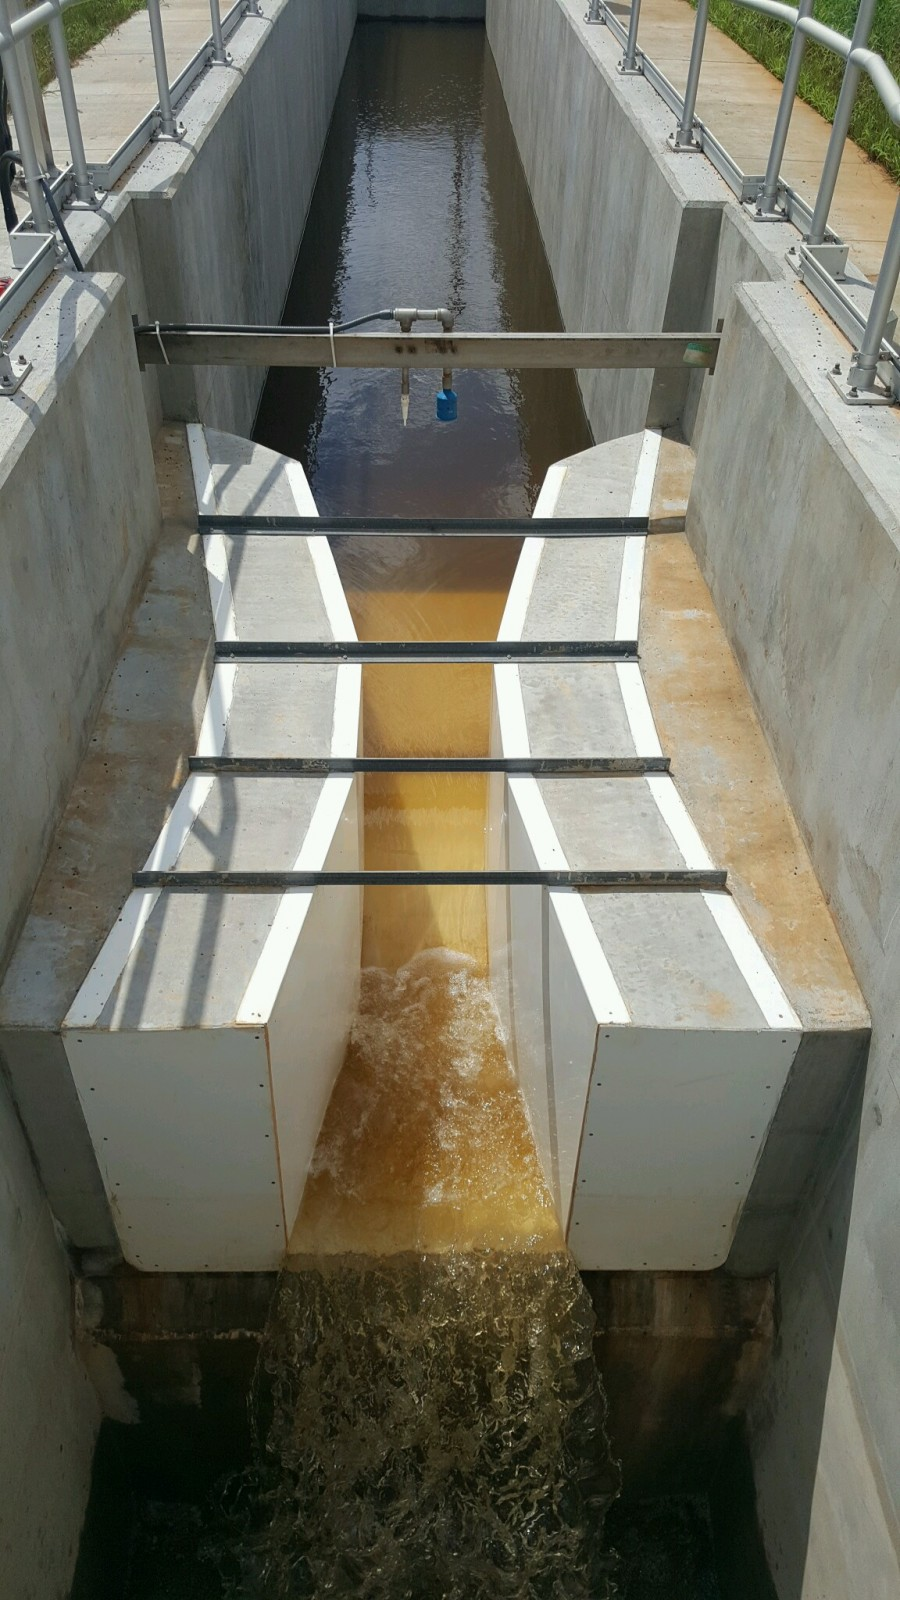 Nested Parshall Flume Installation